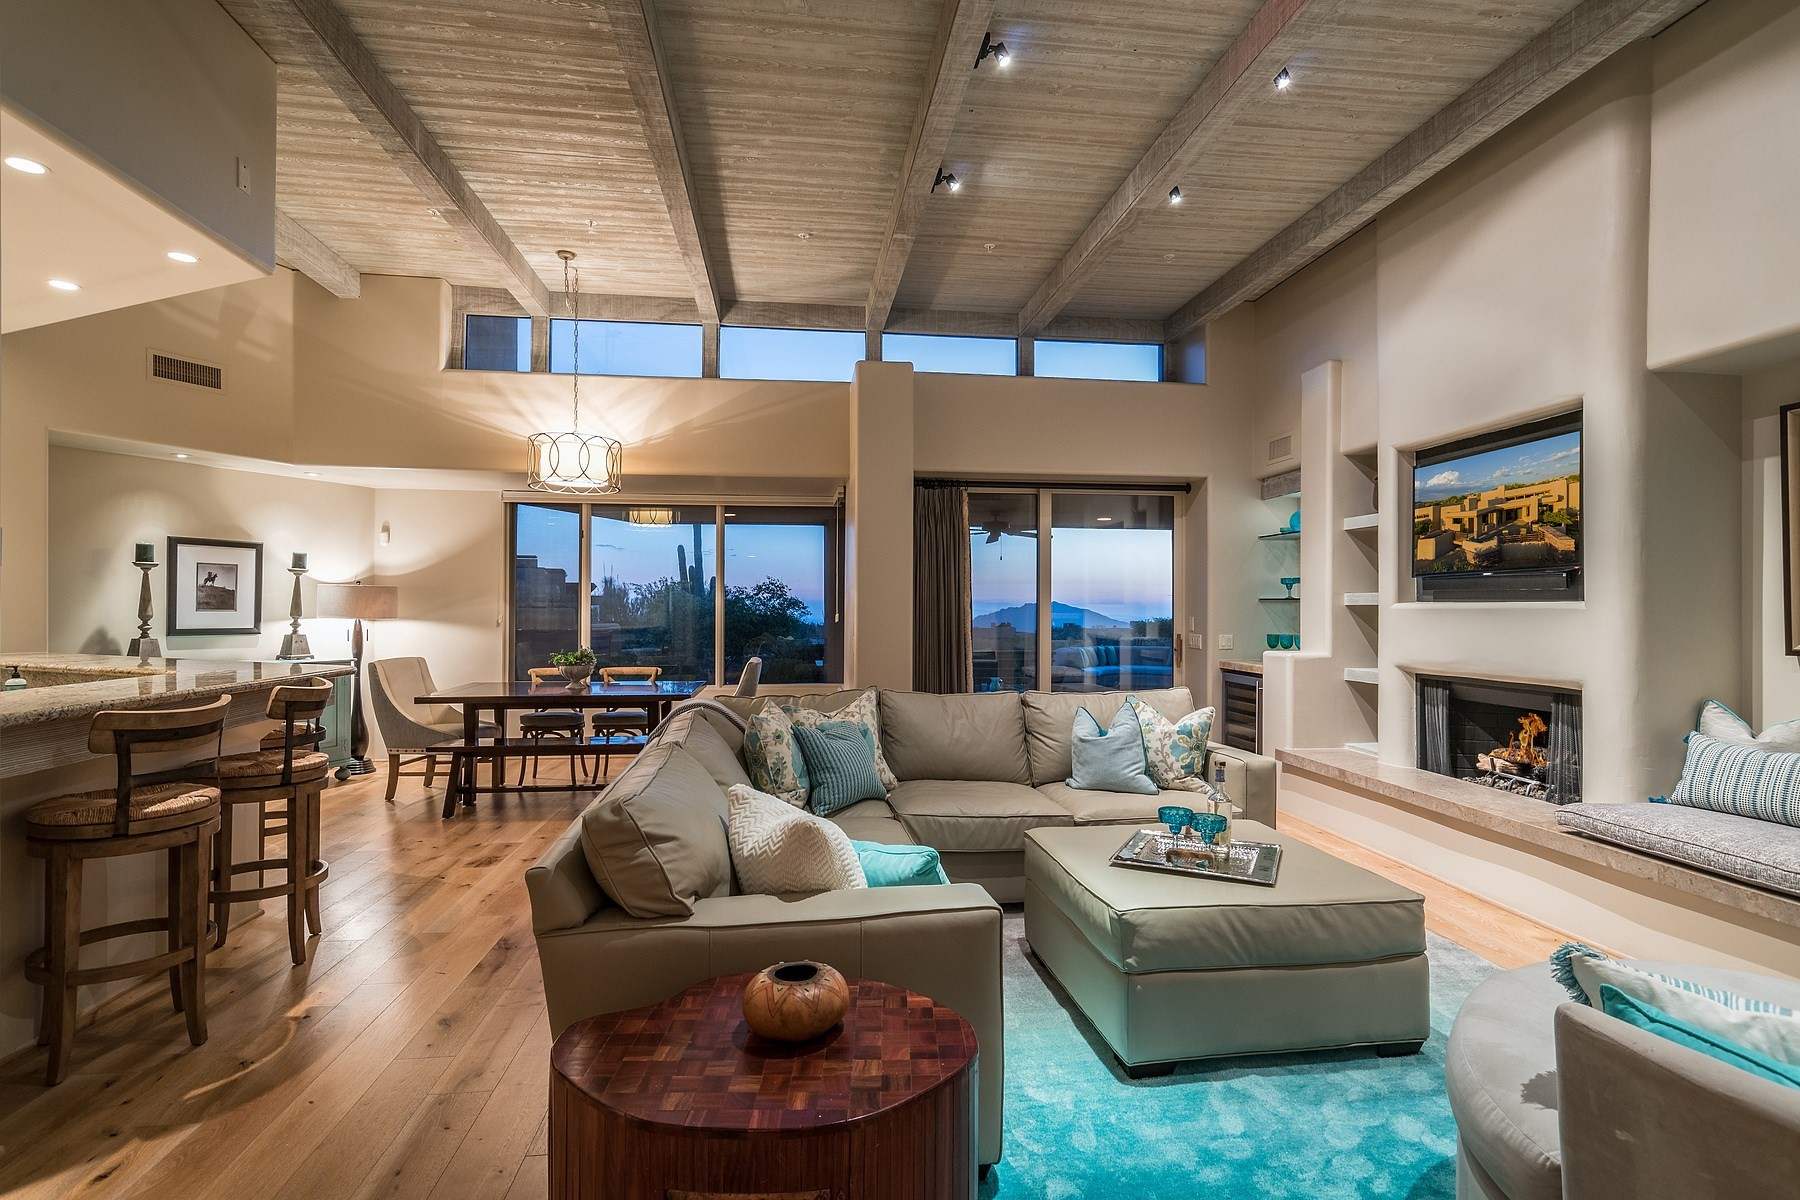 Single Family Home for Sale at Soft contemporary home with unobstructed mountain views 40036 N 110th Place, Scottsdale, Arizona, 85262 United States